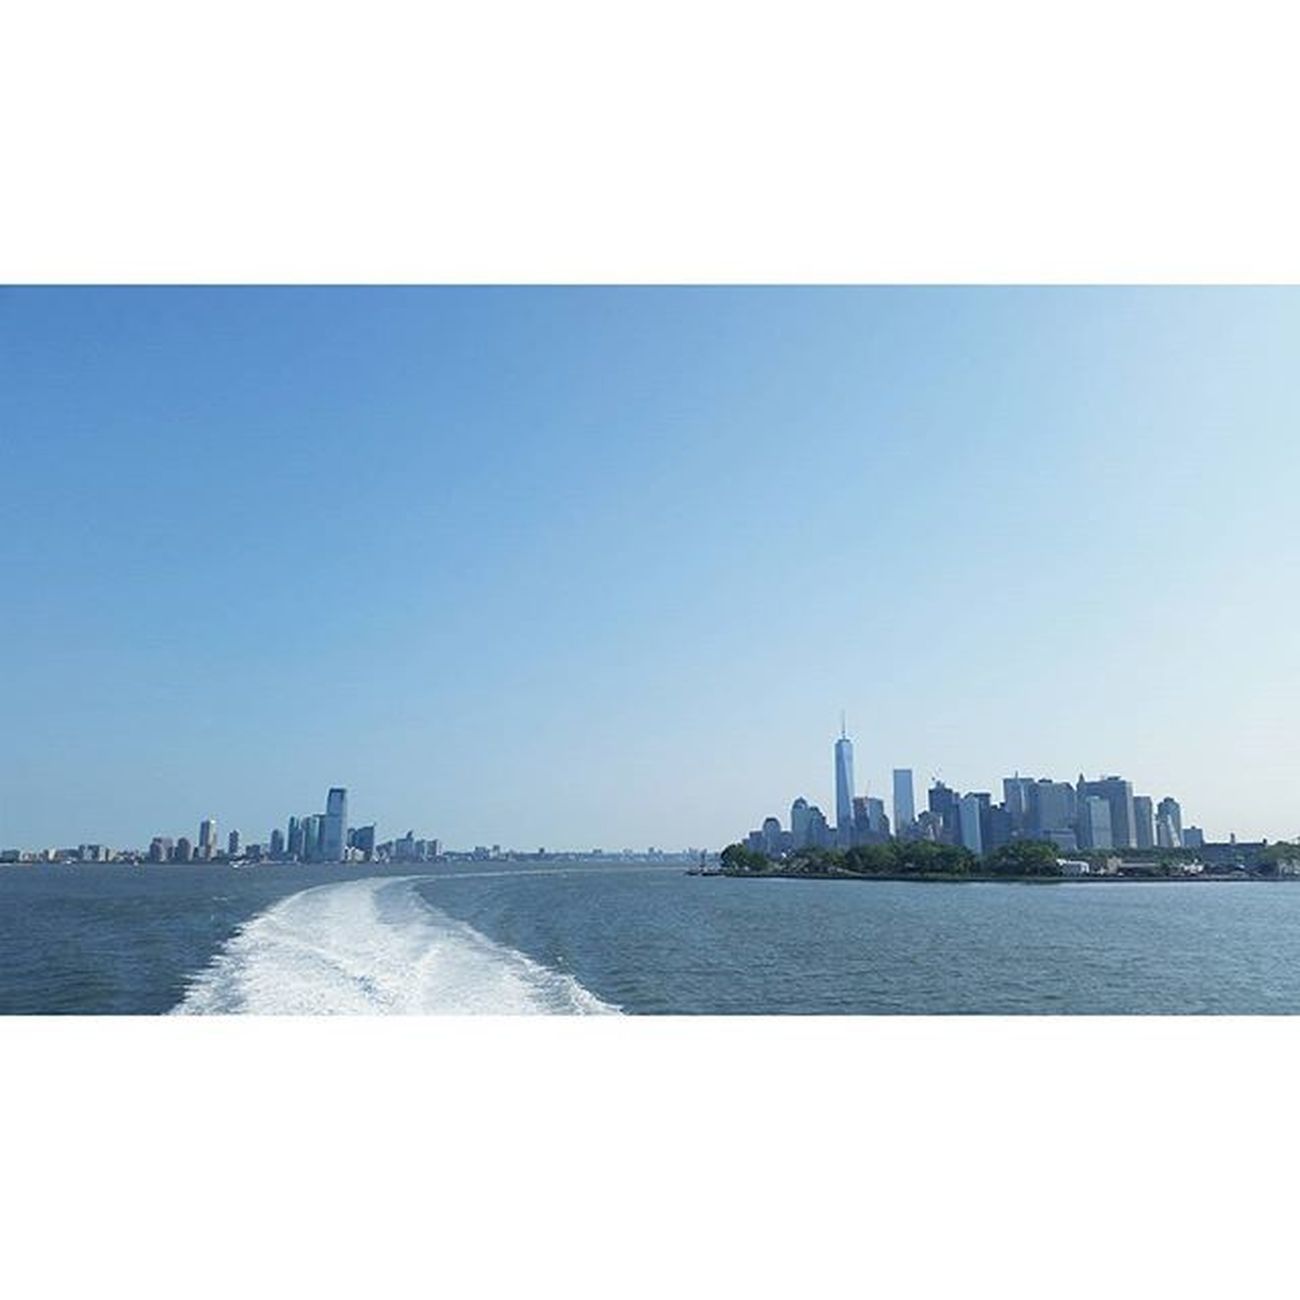 4thofjulyweekend 4thofjuly Holidays Newyorkcity Instanyc WTC Wallstreet Newjersey Newyork Skyline Newyorker Watertaxi Instadaily Instamood Instamoment Bluesky Photooftheday Beautifuldestinations Beach Blueskies Sandyhooknj Seastreakferry Eastriver Cb_travellogs